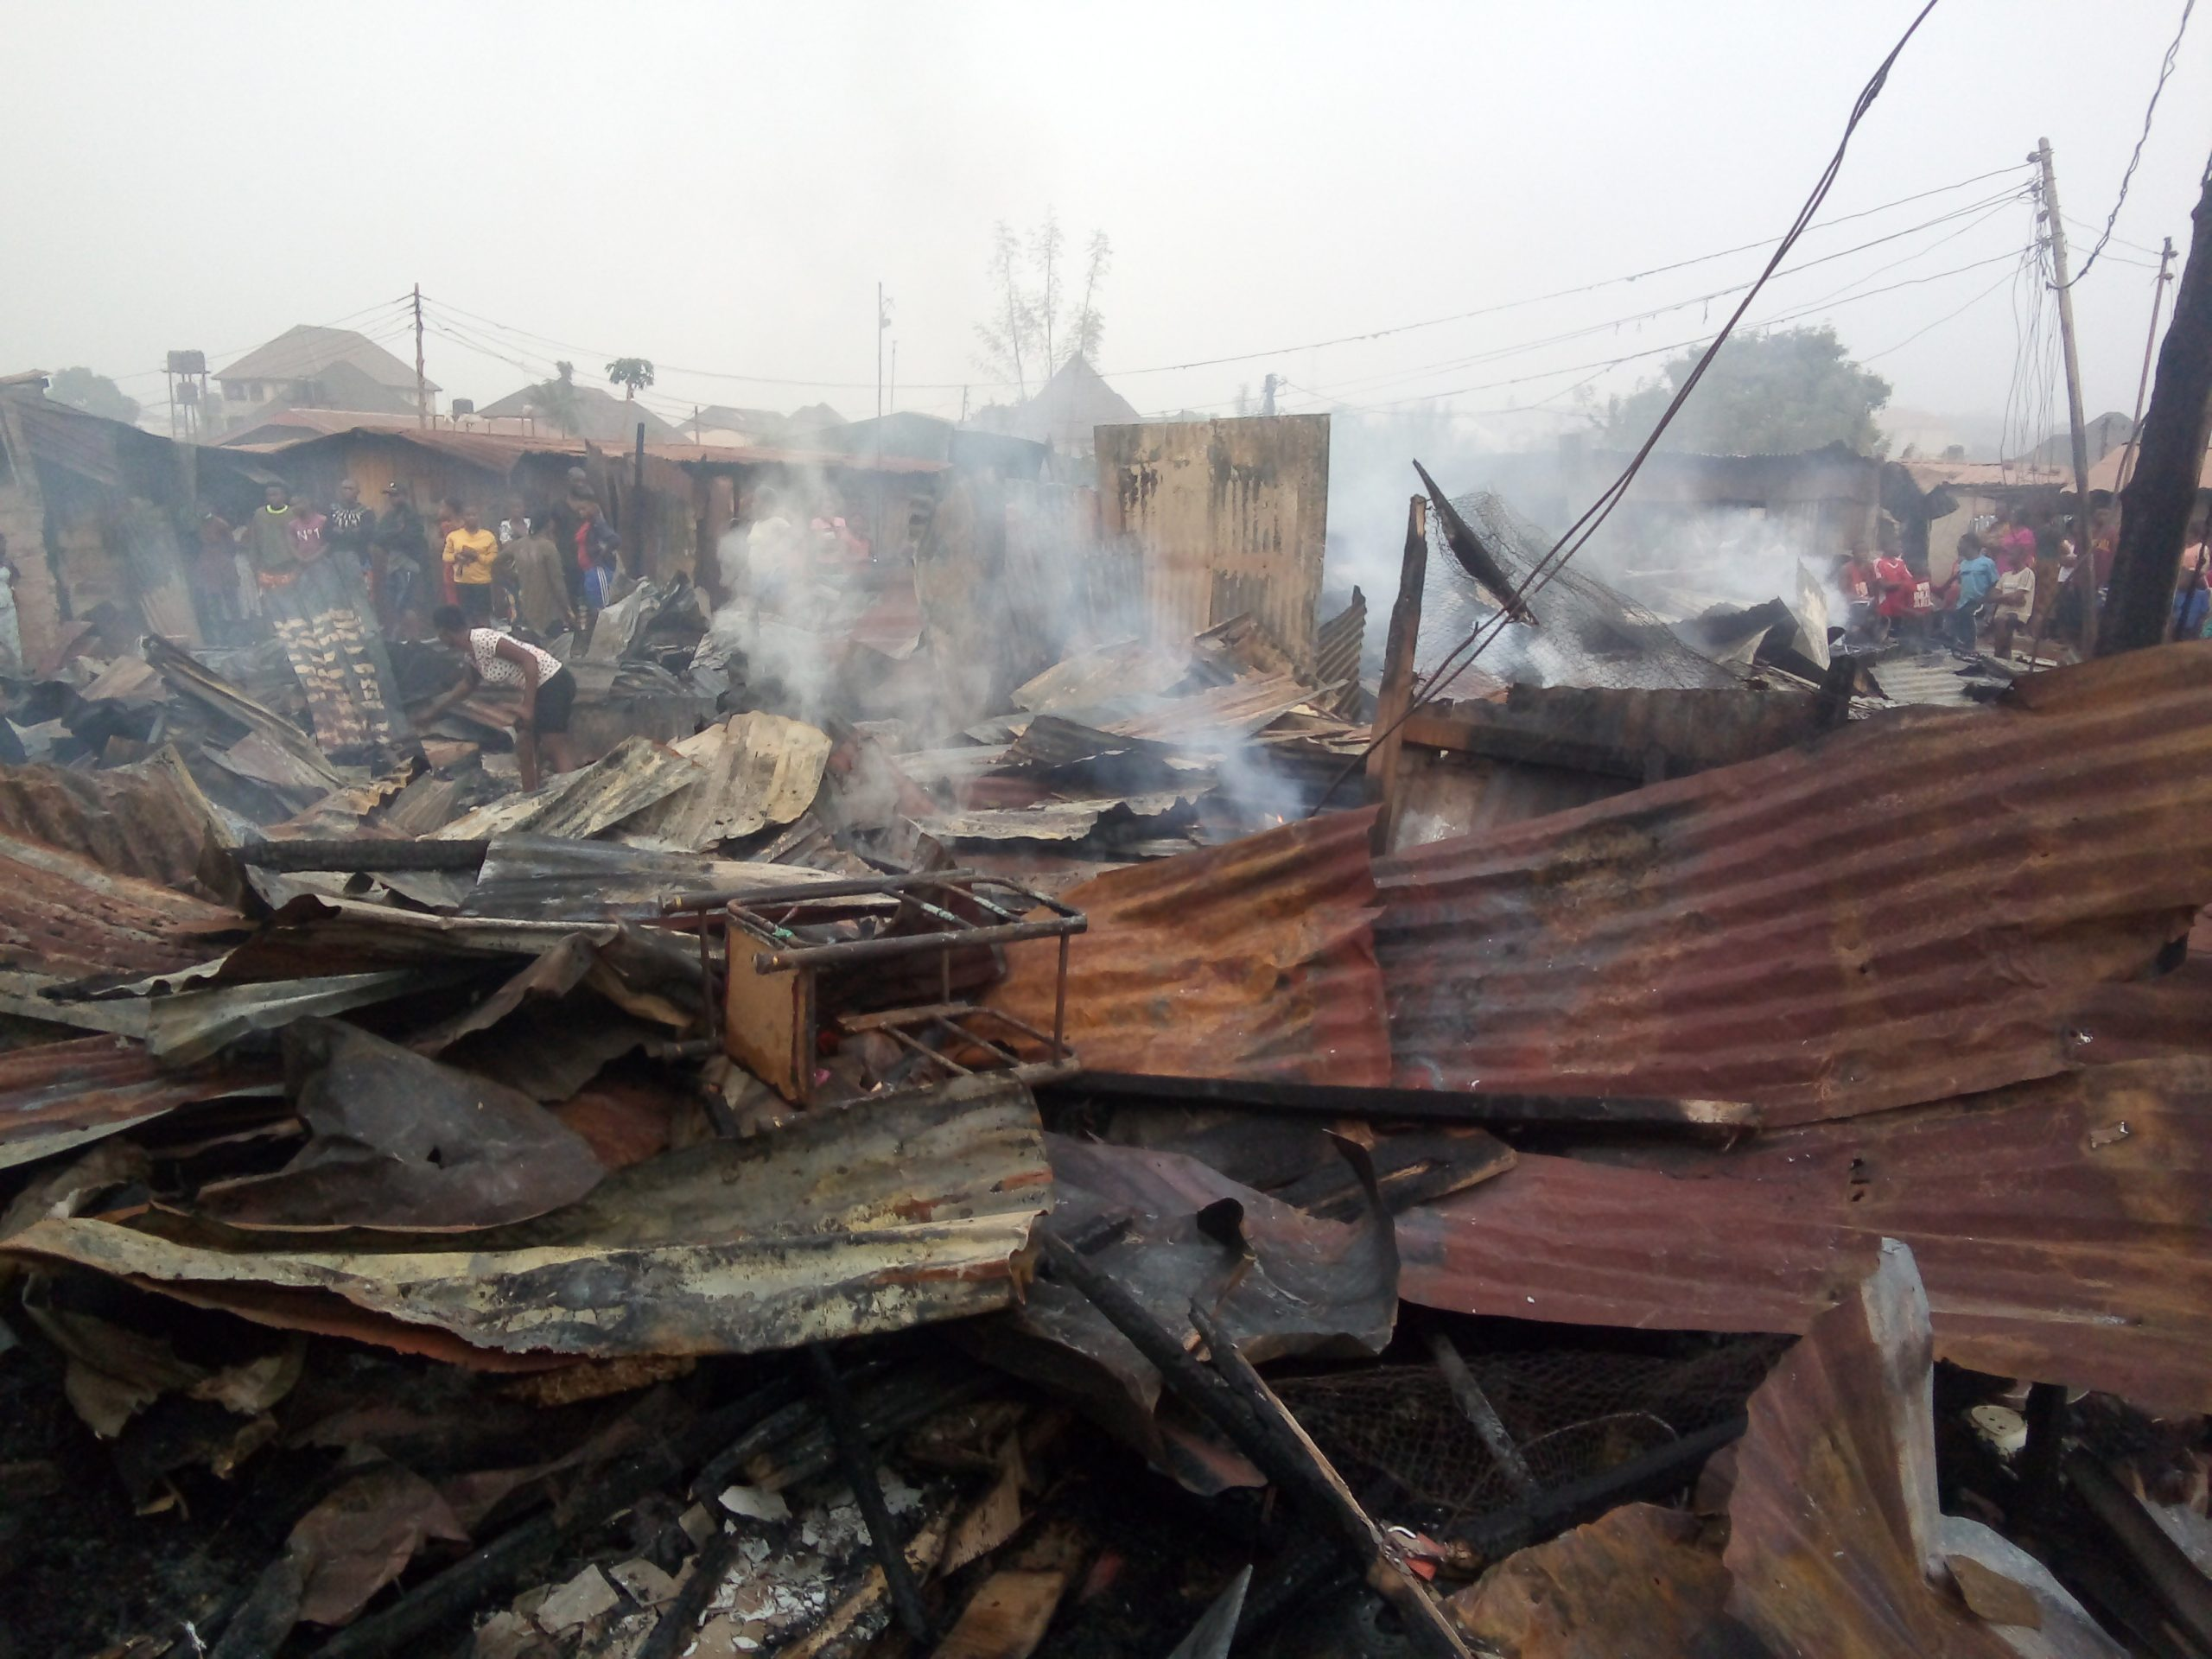 Little girl dies in tragic fire accident